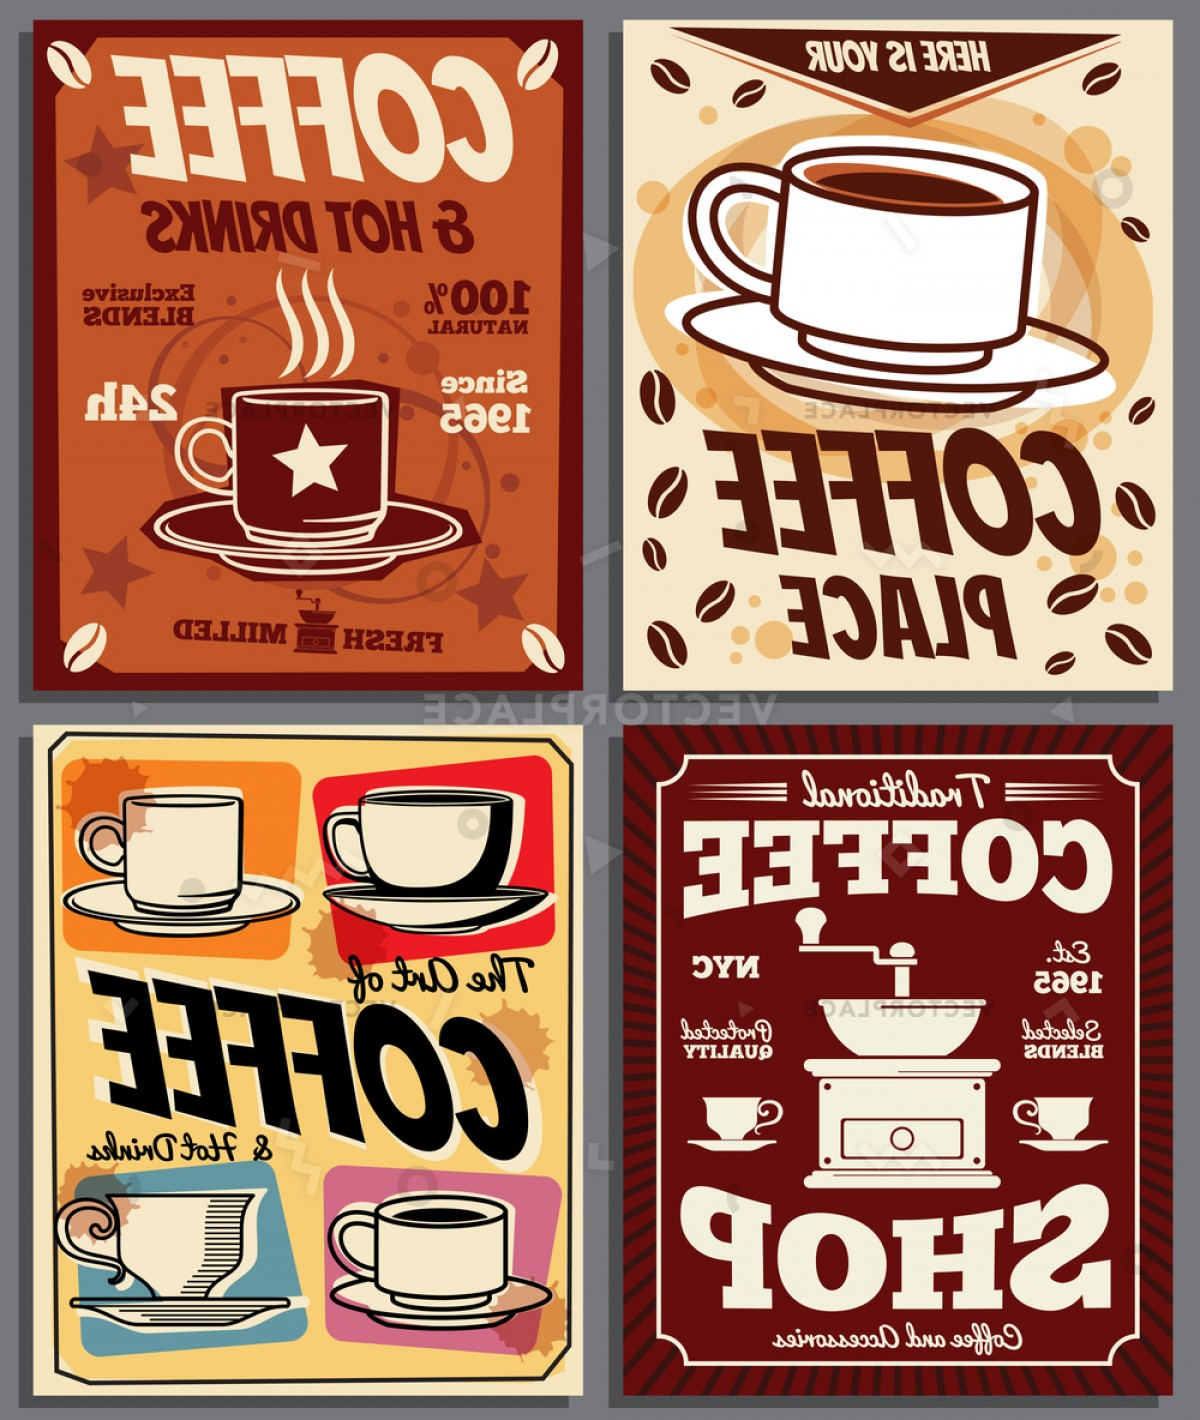 Retro Poster Vector: Cafe Restaurant Retro Posters Templates Coffee Vector Illustration